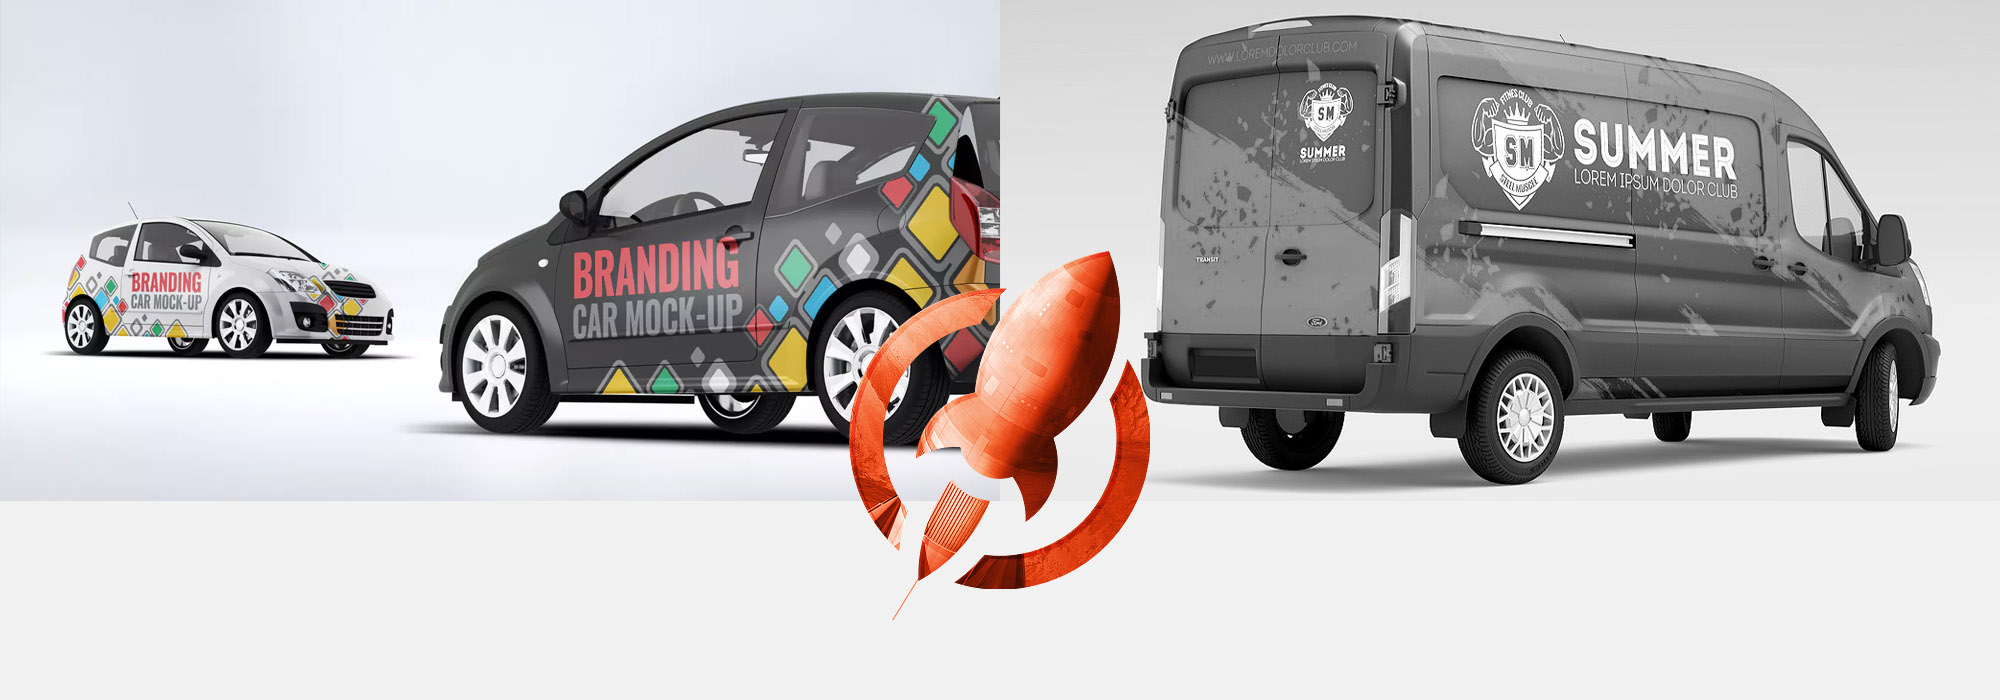 Vehicle Vinyl Wrapping | Rush Flyer Printing | Same Day Printing